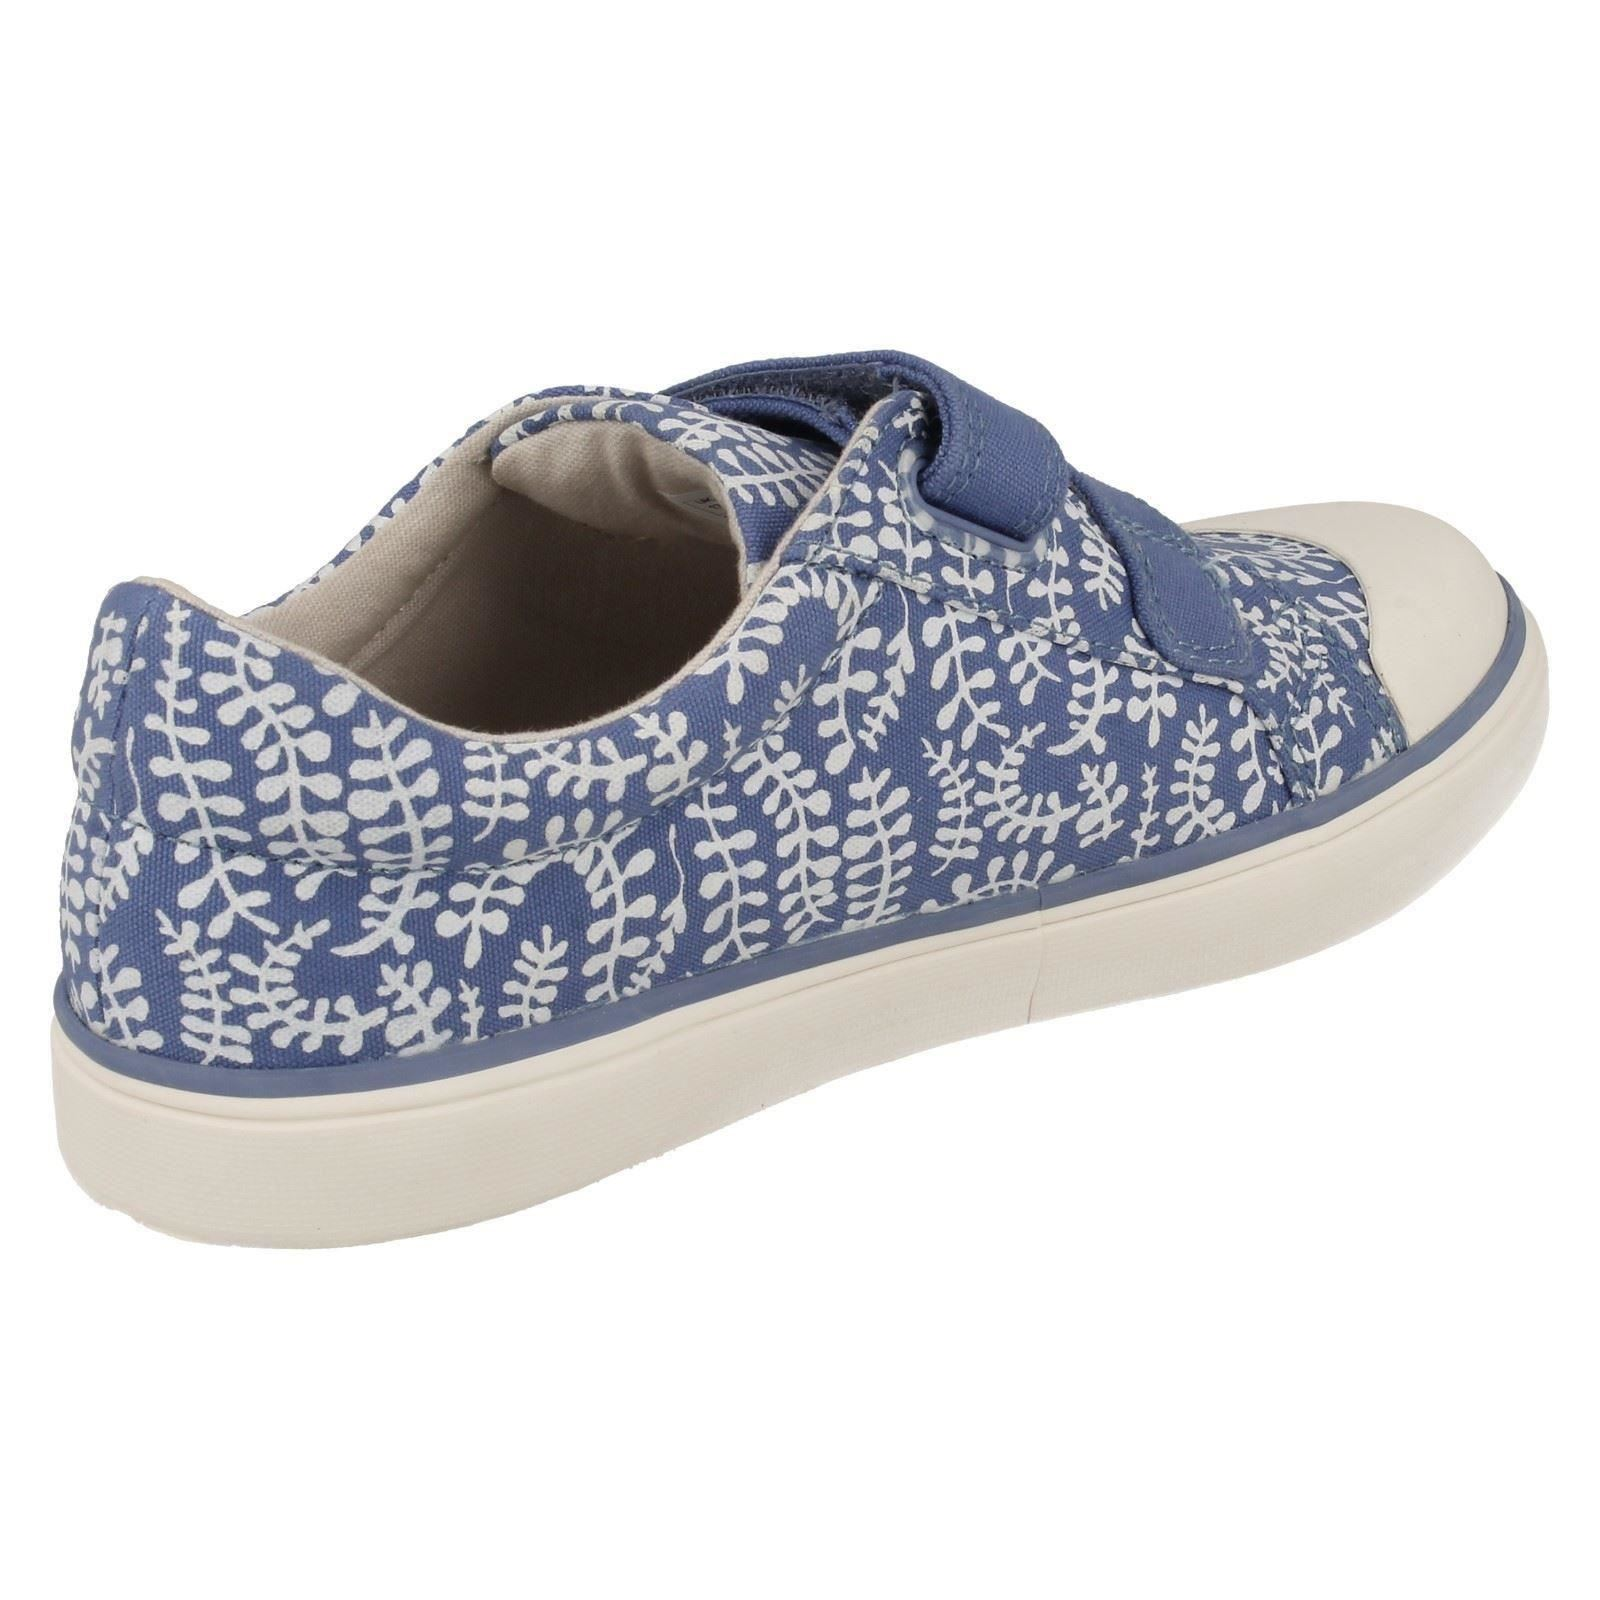 'Infant/Junior Girls Clarks' Rounded Toe Riptape Strap Canvas Pumps - Brill Ice